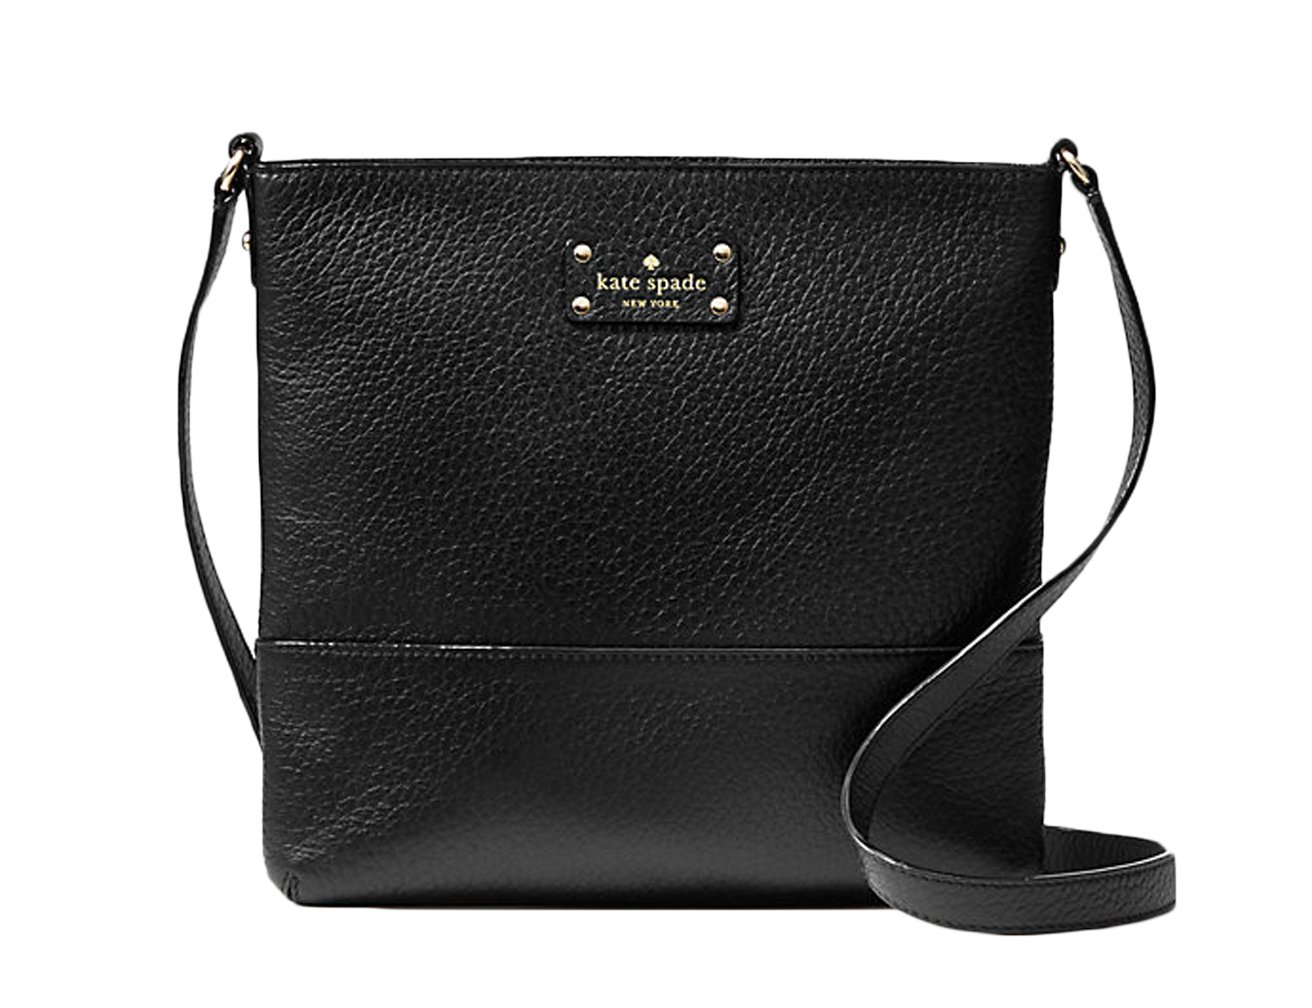 Kate Spade New York Bay Street Cora Cross-body Handbag (Black) by Kate Spade New York